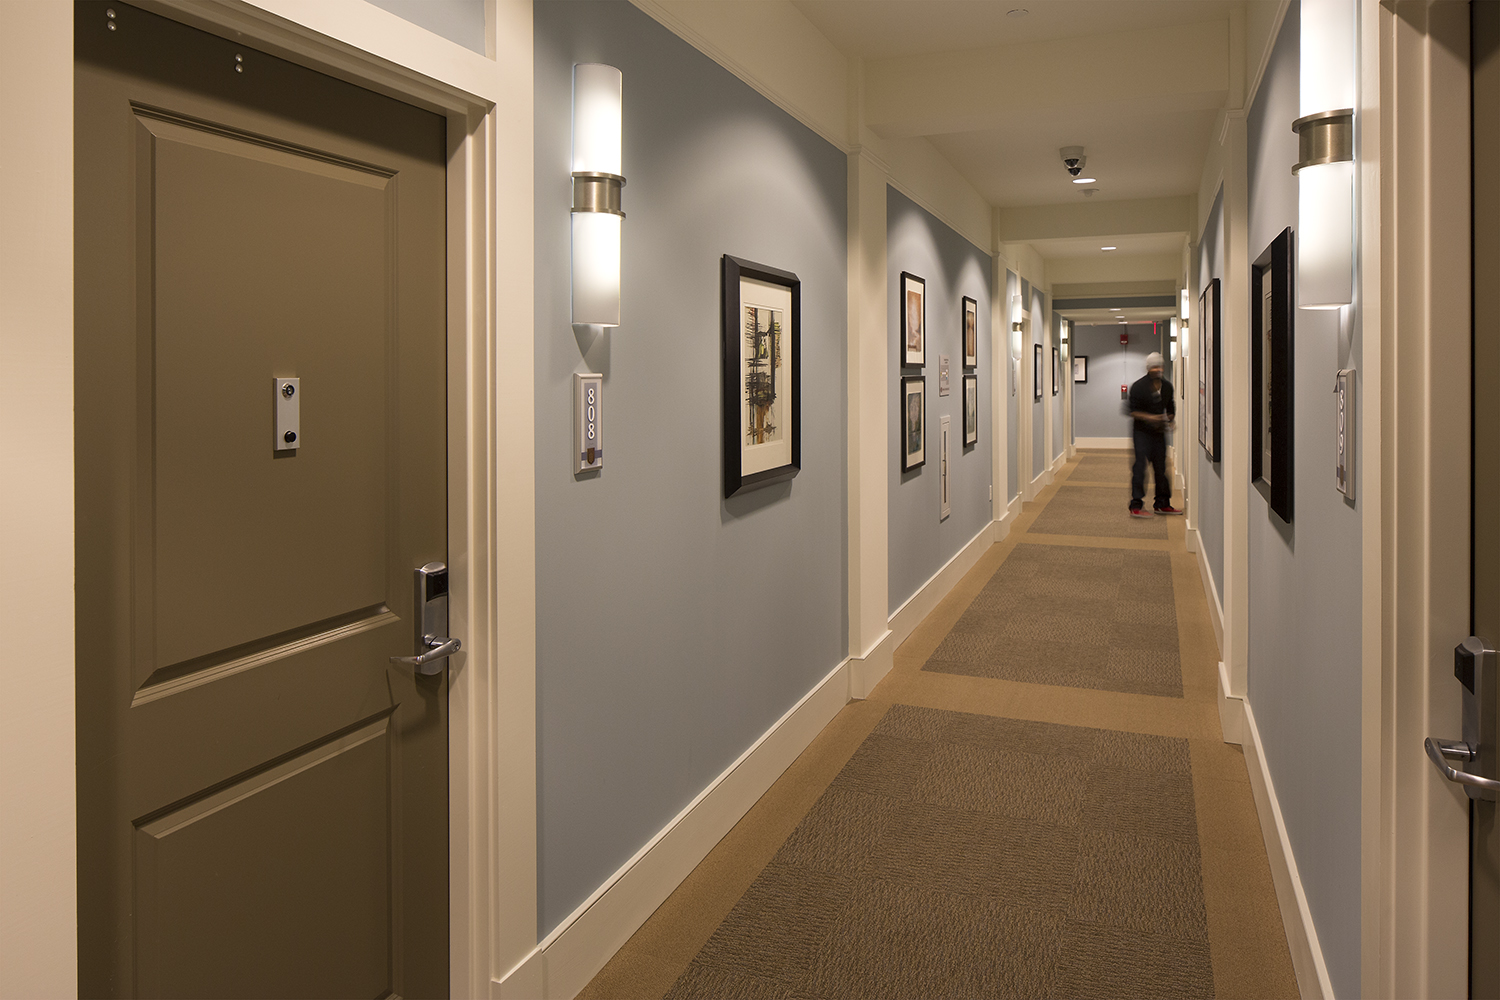 Pila sconces are ideal for hotel or apartment lighting applications, seen here alongside doors in a residential hallway.